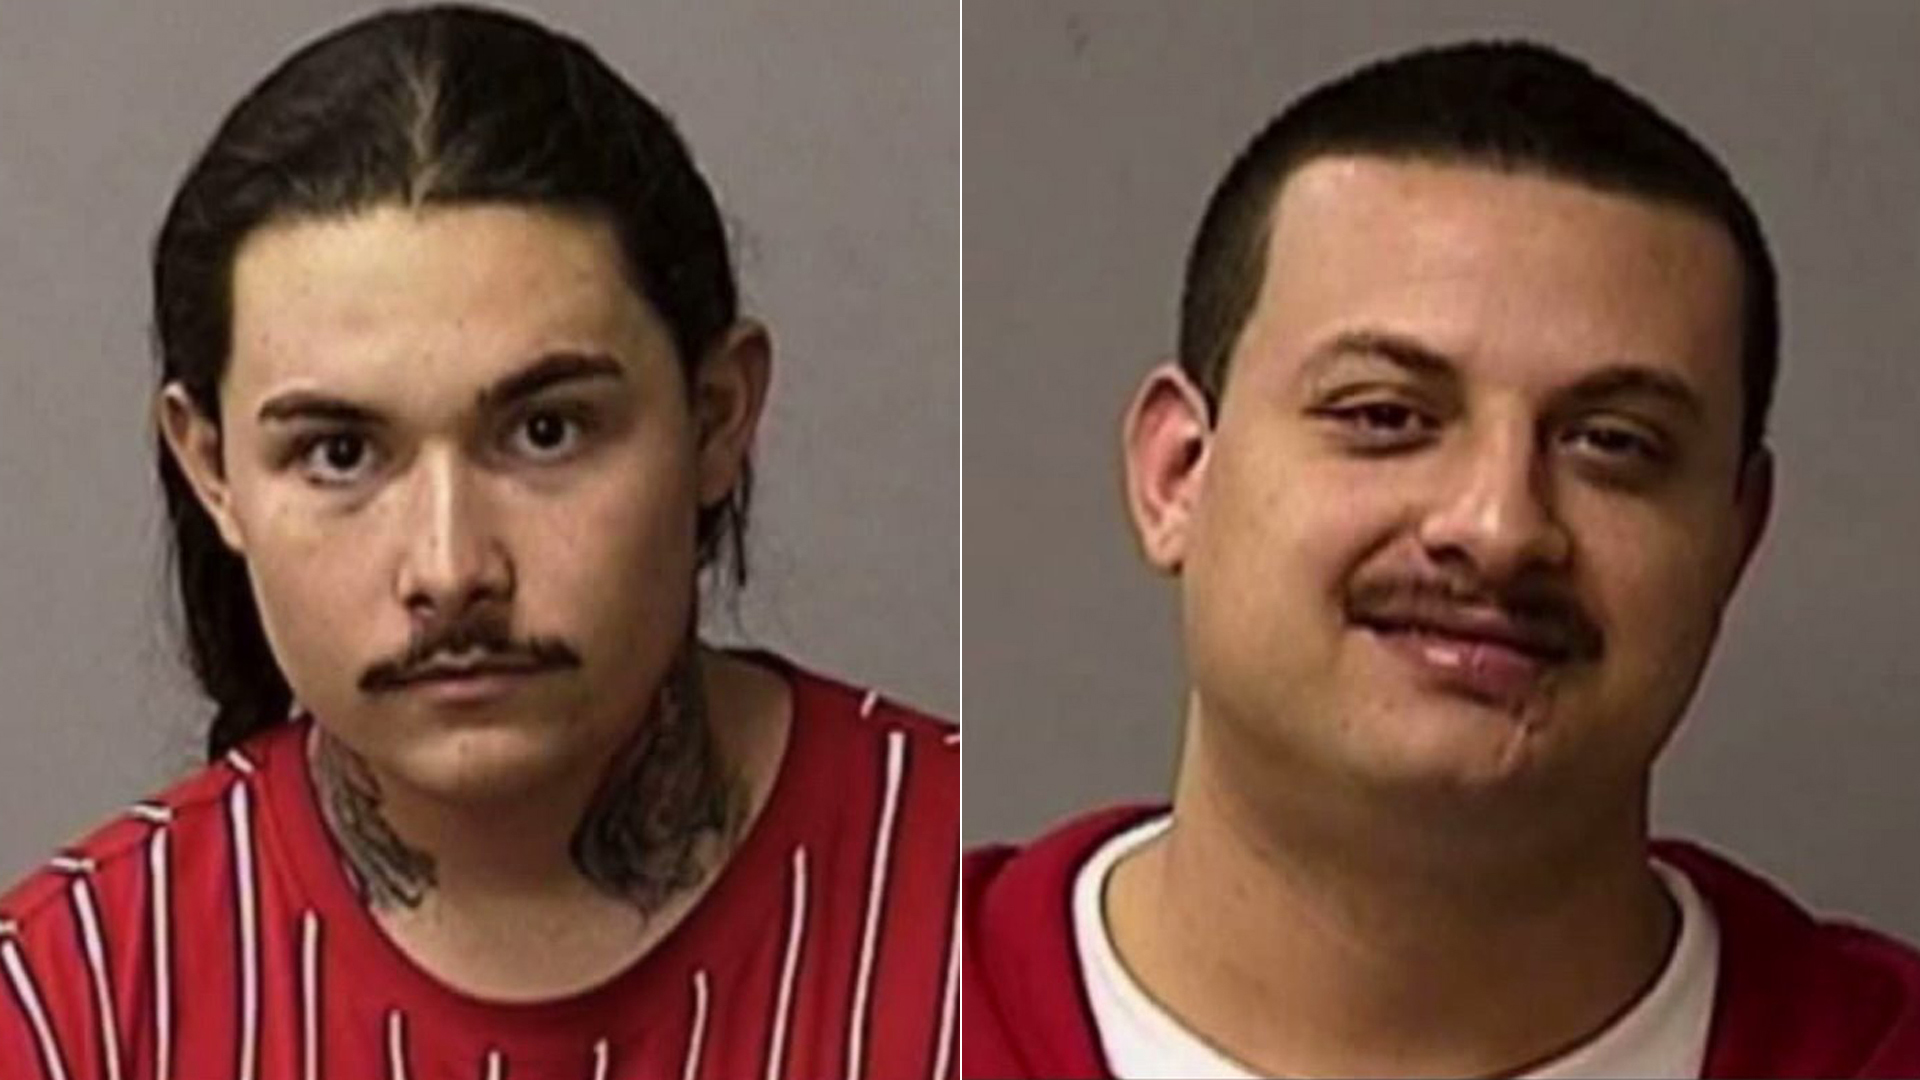 Matthew Arguello, left, and Ruben Rosales, right, are seen in photos obtained by KTXL.